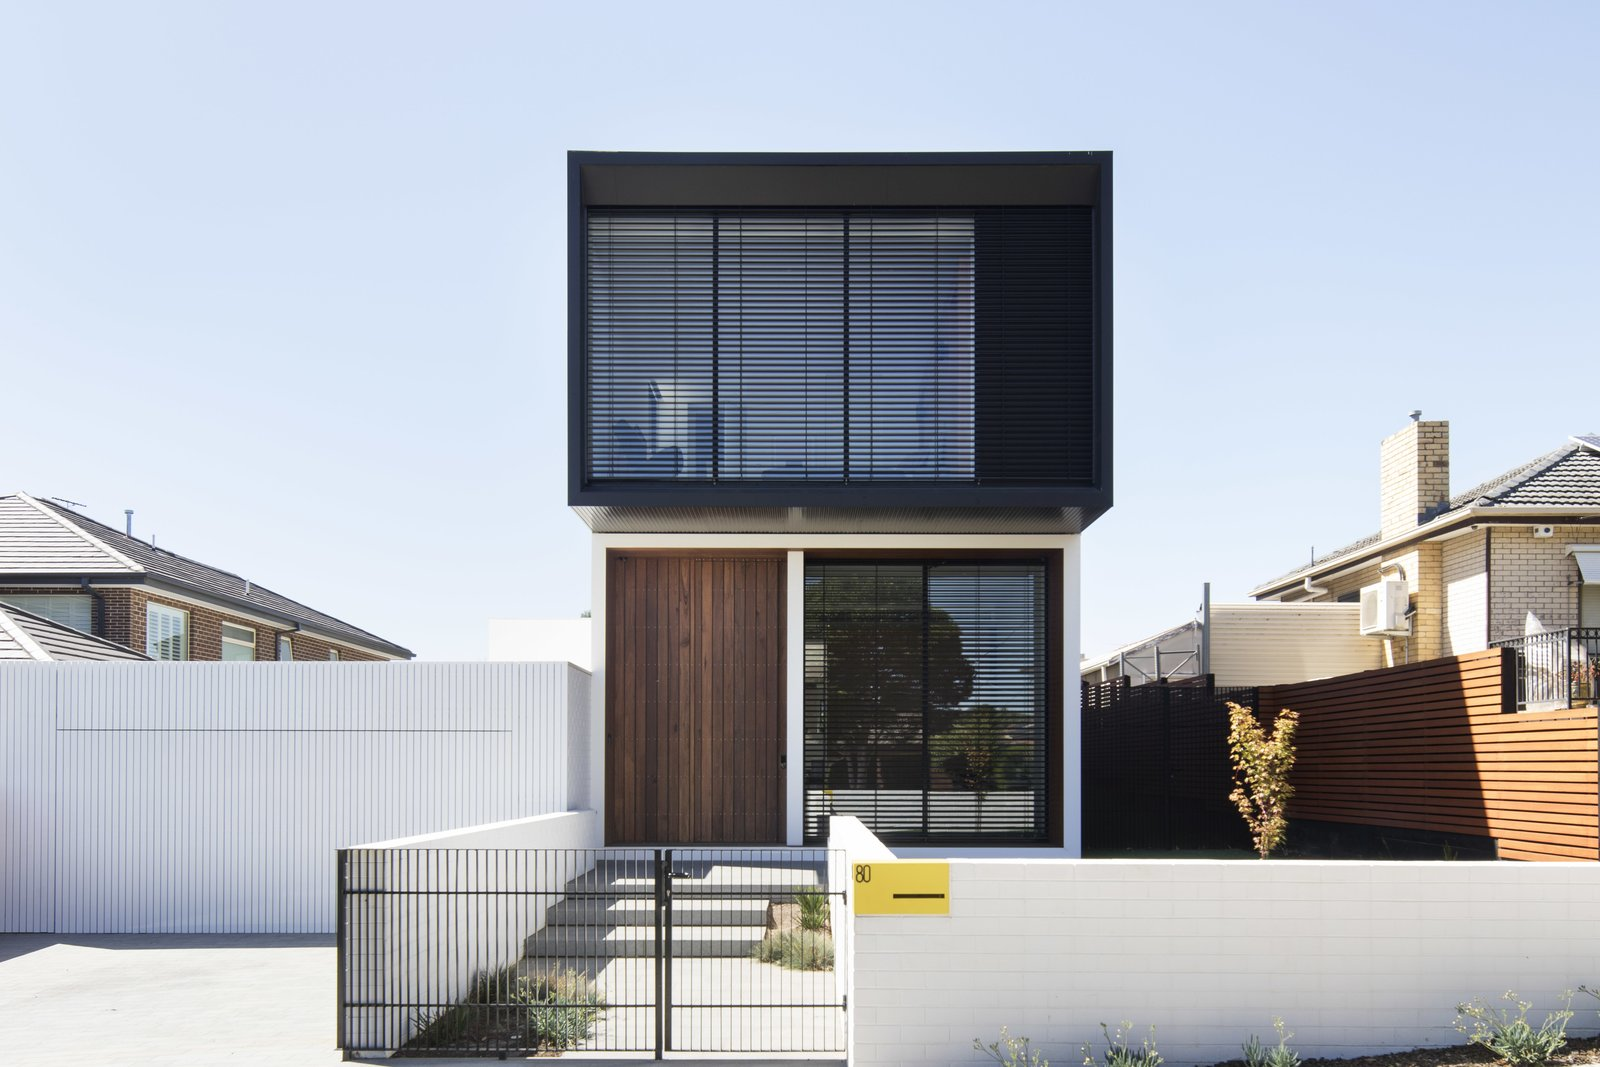 Exterior, Metal Roof Material, House Building Type, Brick Siding Material, Metal Siding Material, and Flat RoofLine The home presents a narrow facade to the street.  Photos from A Sleek Australian Dwelling Keeps its Cool With Passive Design